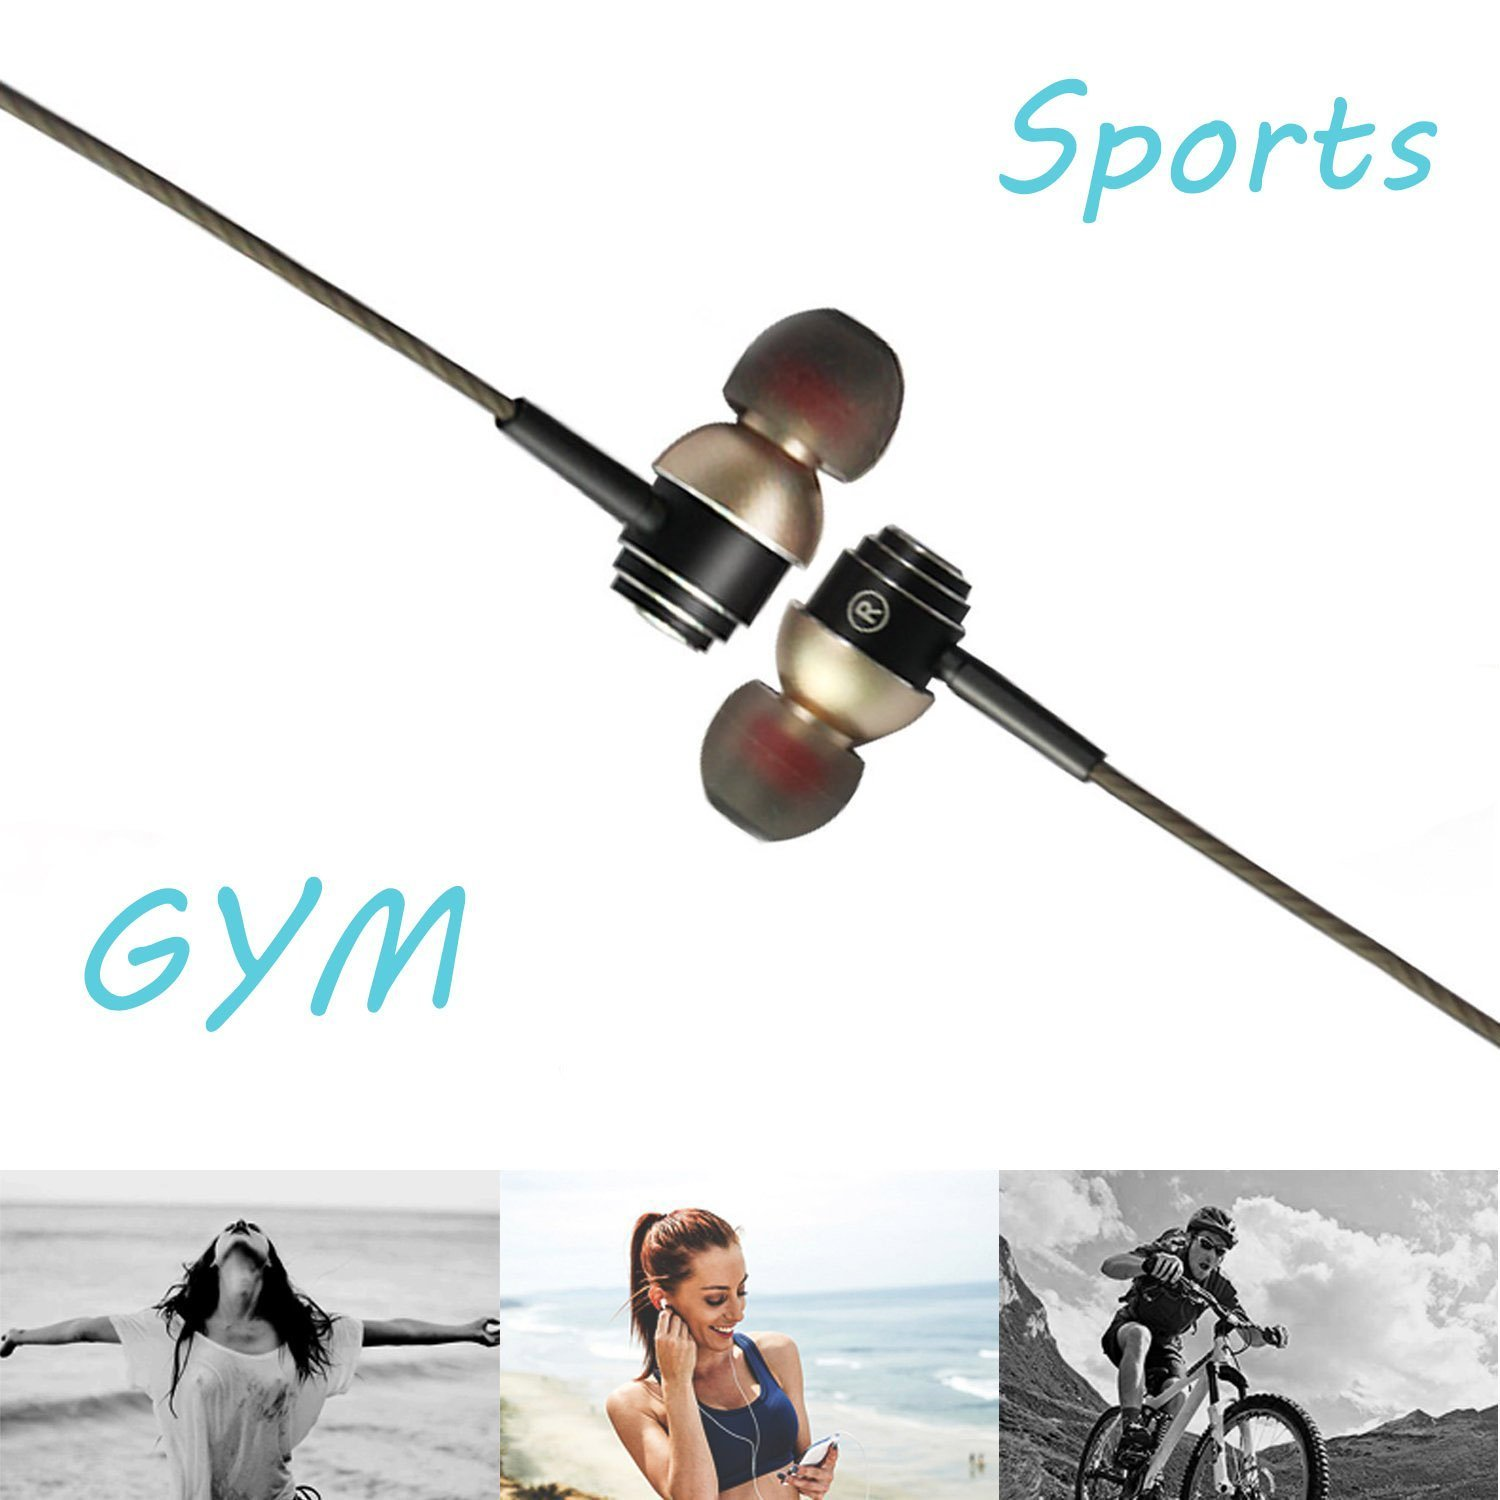 SUPNEW Earphones in Ear Headphones Earbuds with Microphone and Volume Control for iPhone Android Smartphone Tablet Laptop, 3.5mm Audio Plug Devices by SUPNEW (Image #5)